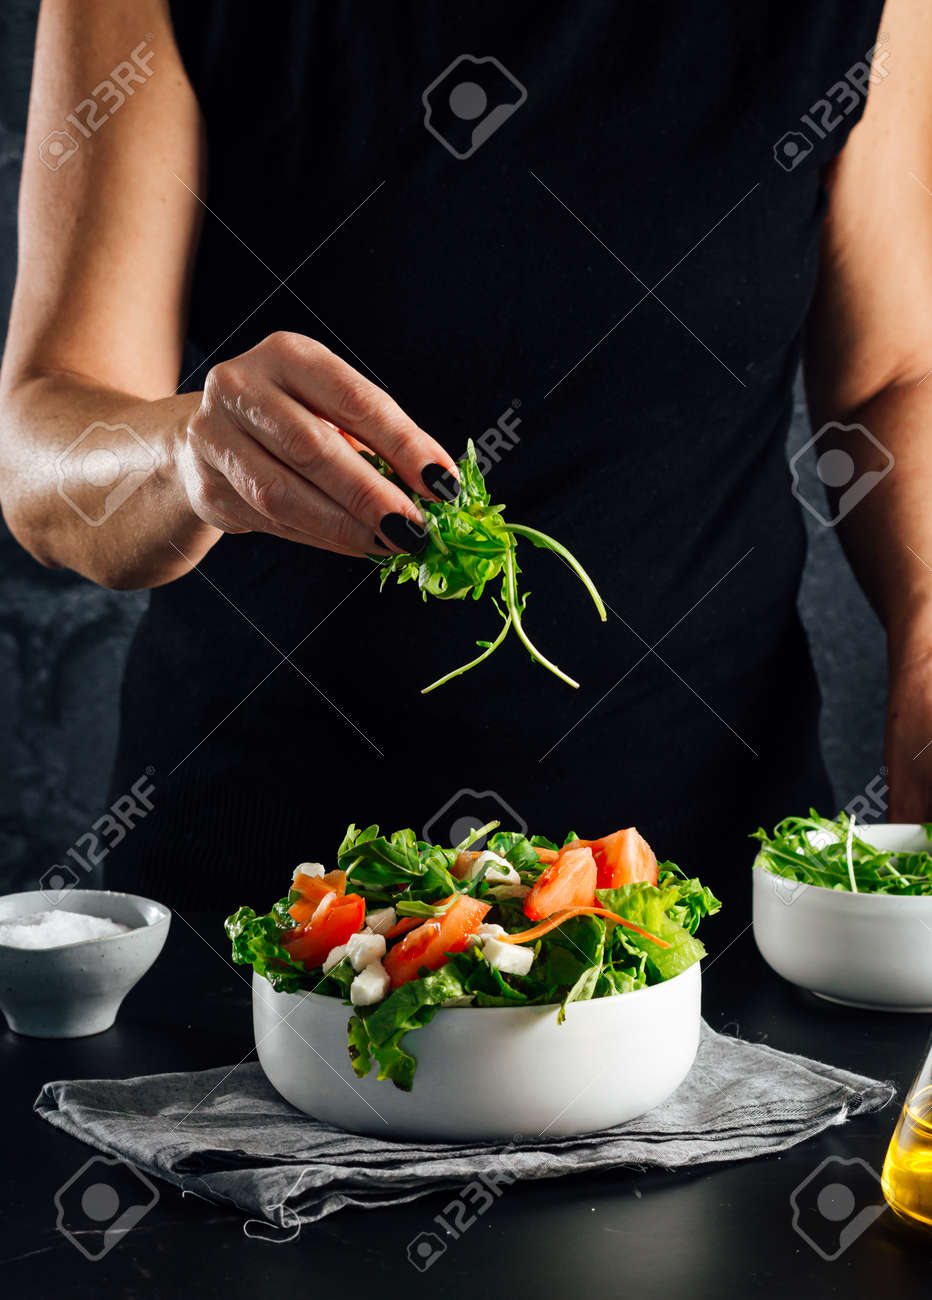 Woman preparing a salad with tomatoes, lettuce, olive oil and salt Concept of healthy diet - 165273810